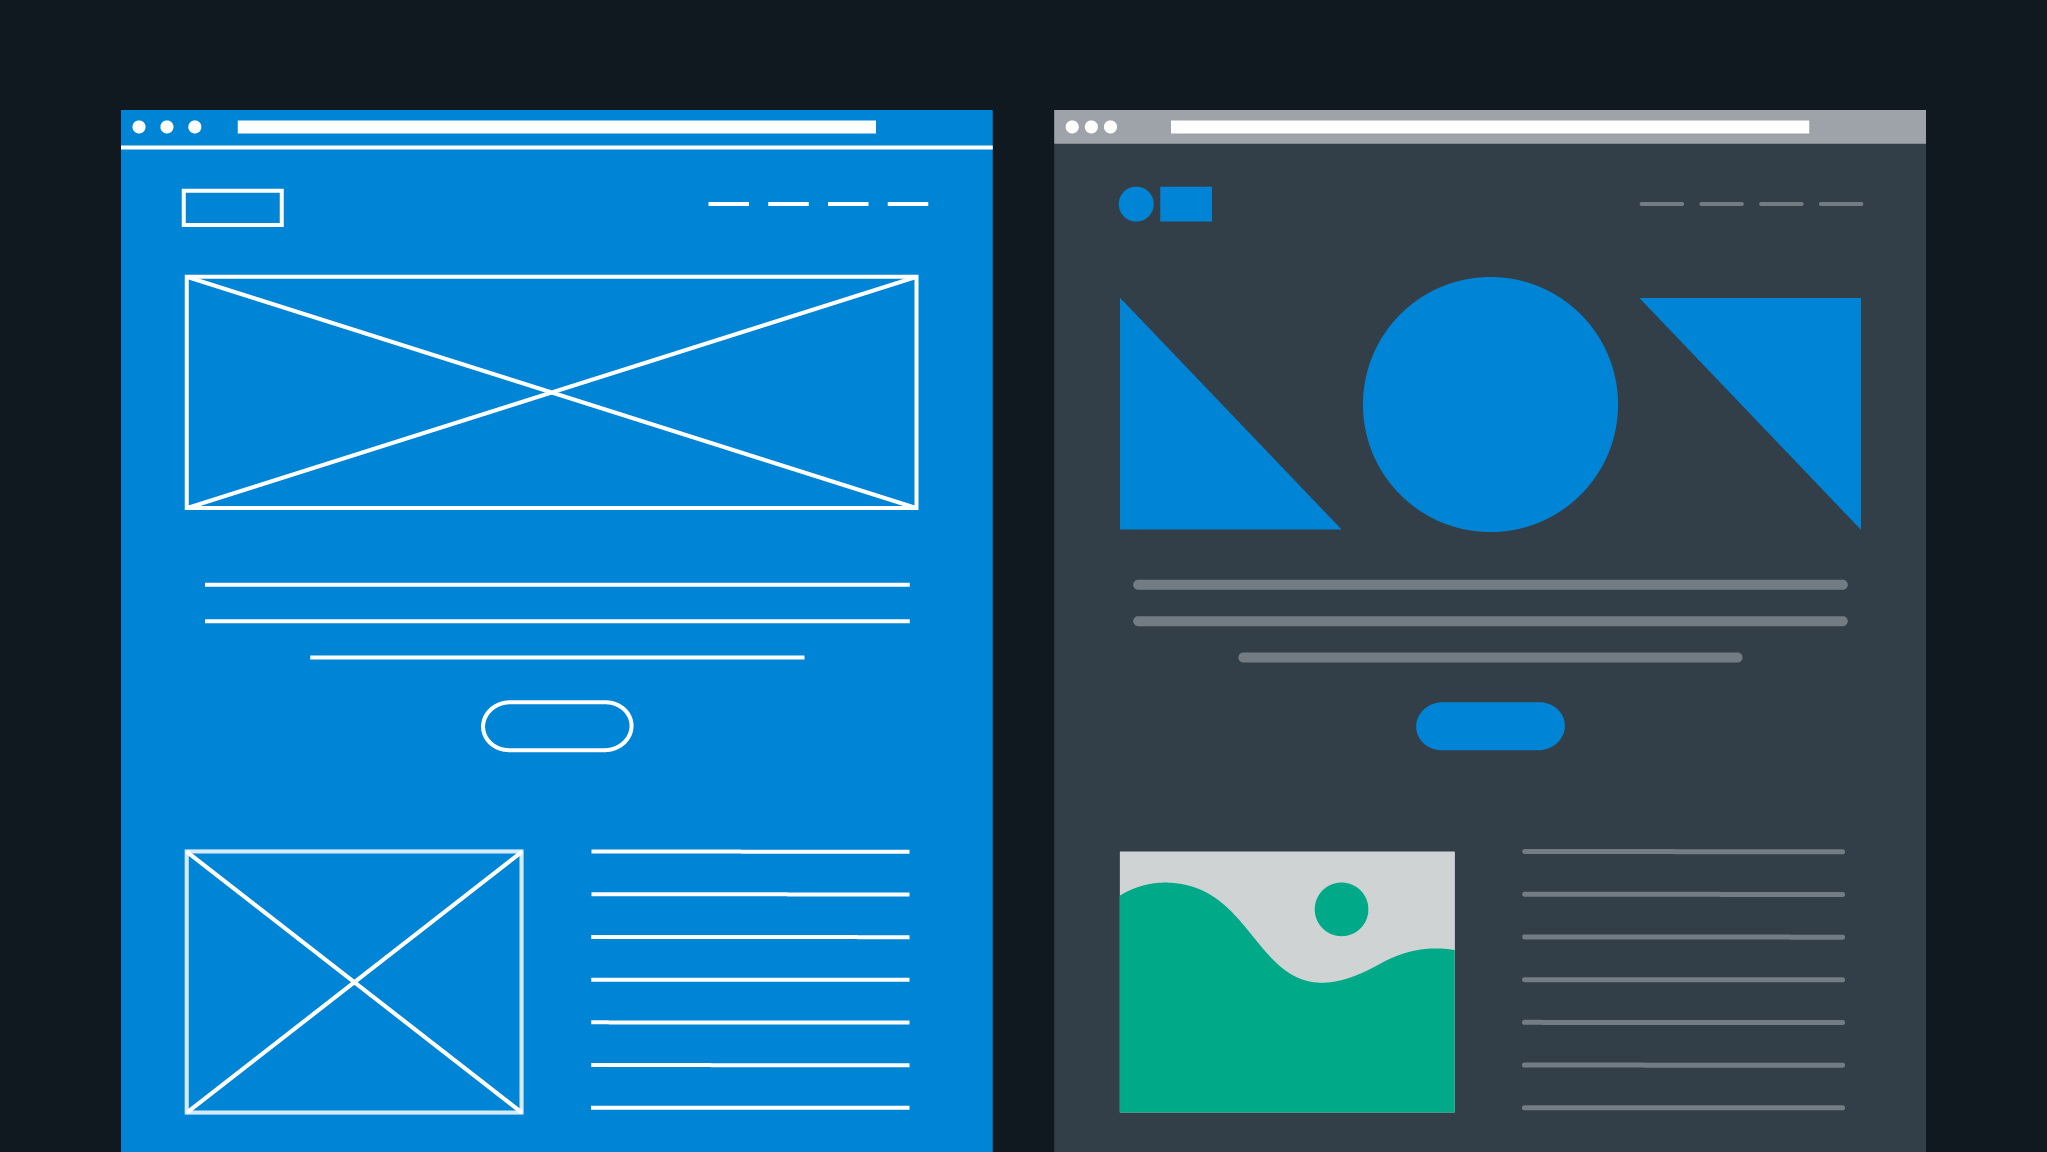 An illustration of wireframes next to a completed web design